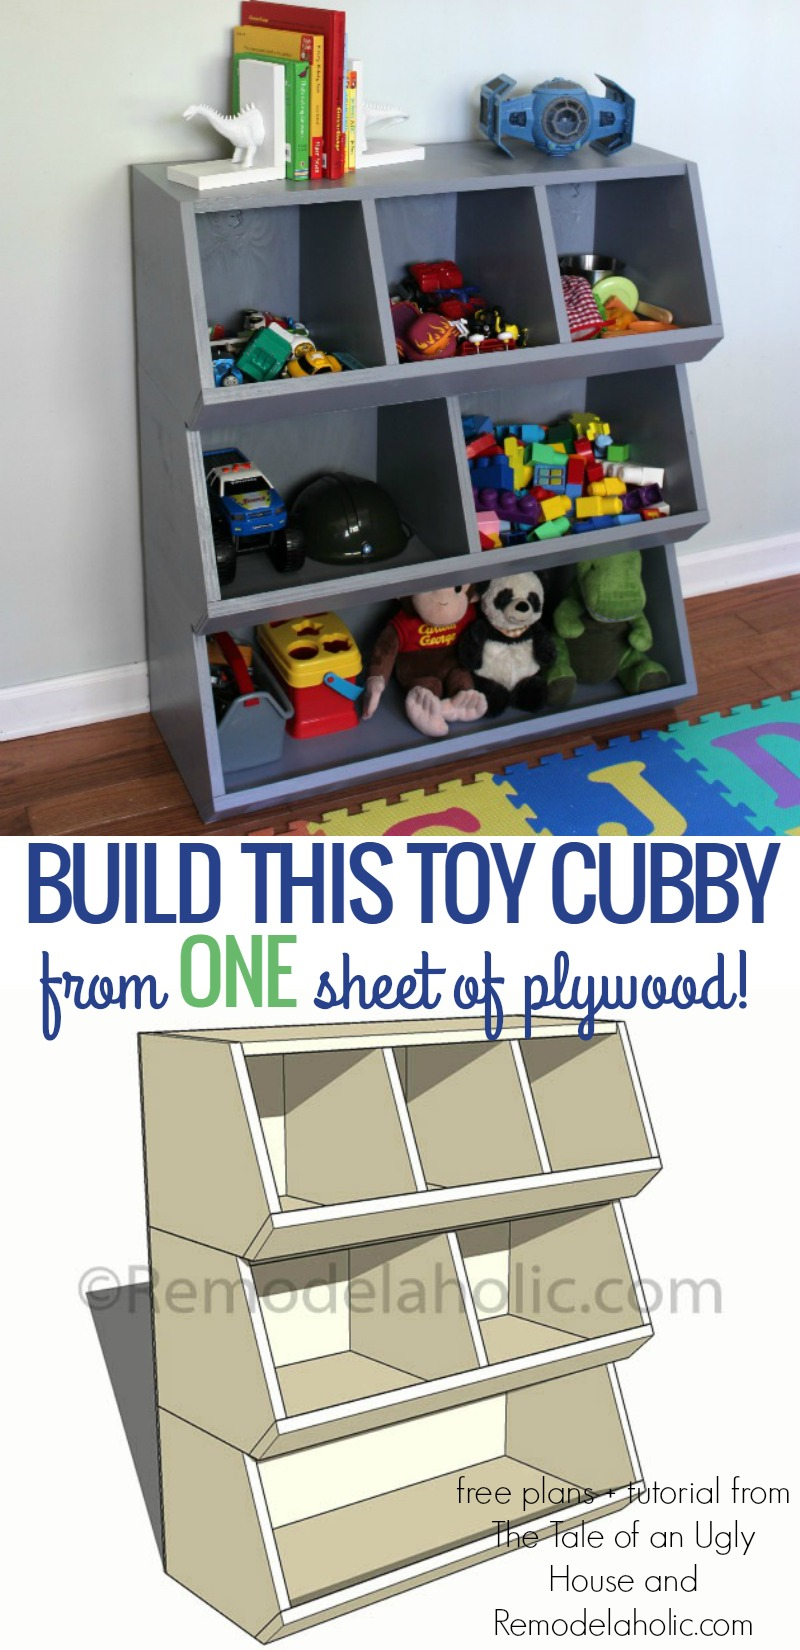 Toy Storage For Boys : Remodelaholic how to build a toy cubby shelf boy s